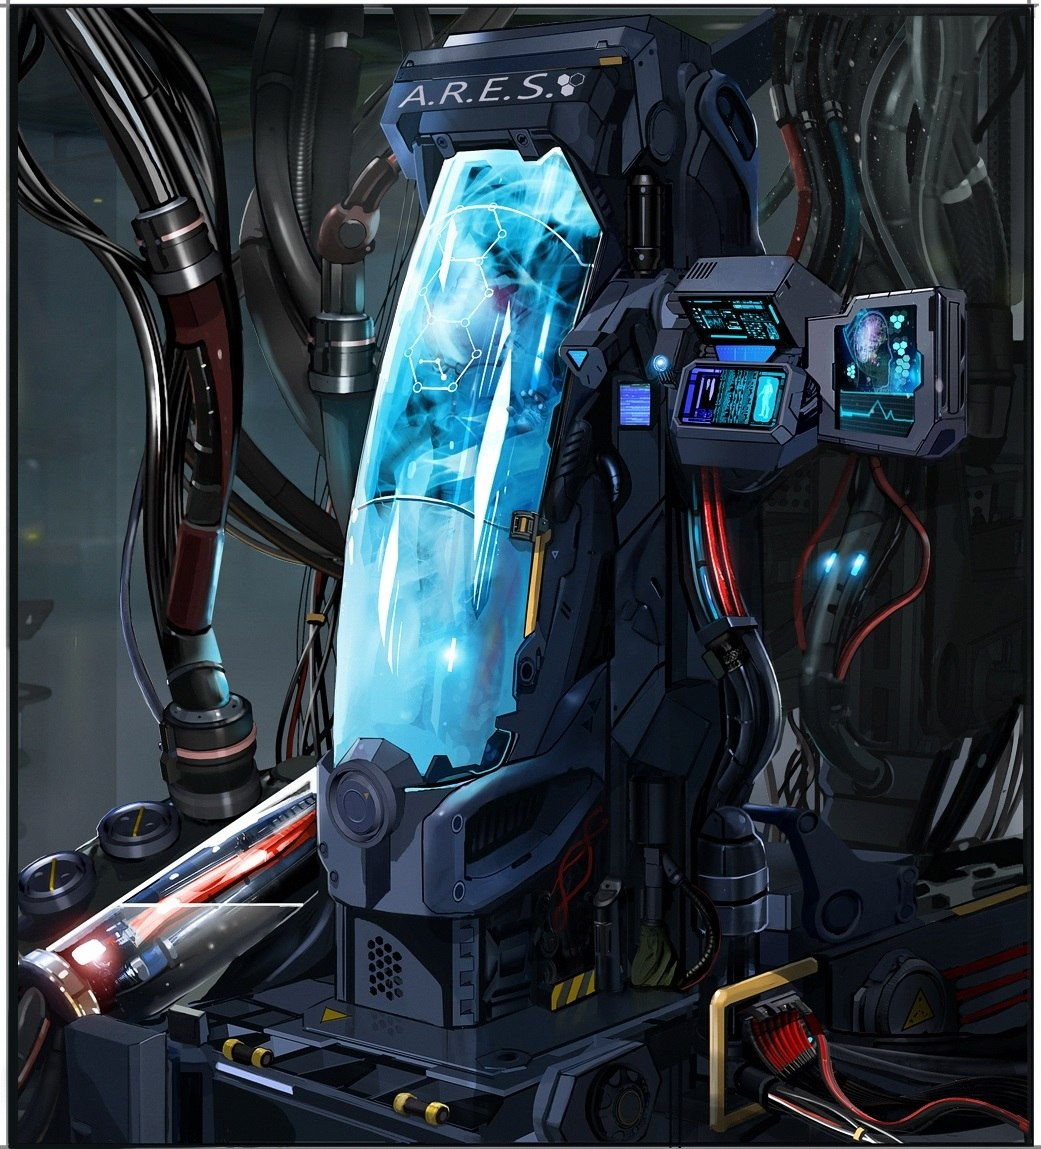 Project A.R.E.S. hyperbaric chamber, in which the captain of the Black Legion Walter Blake